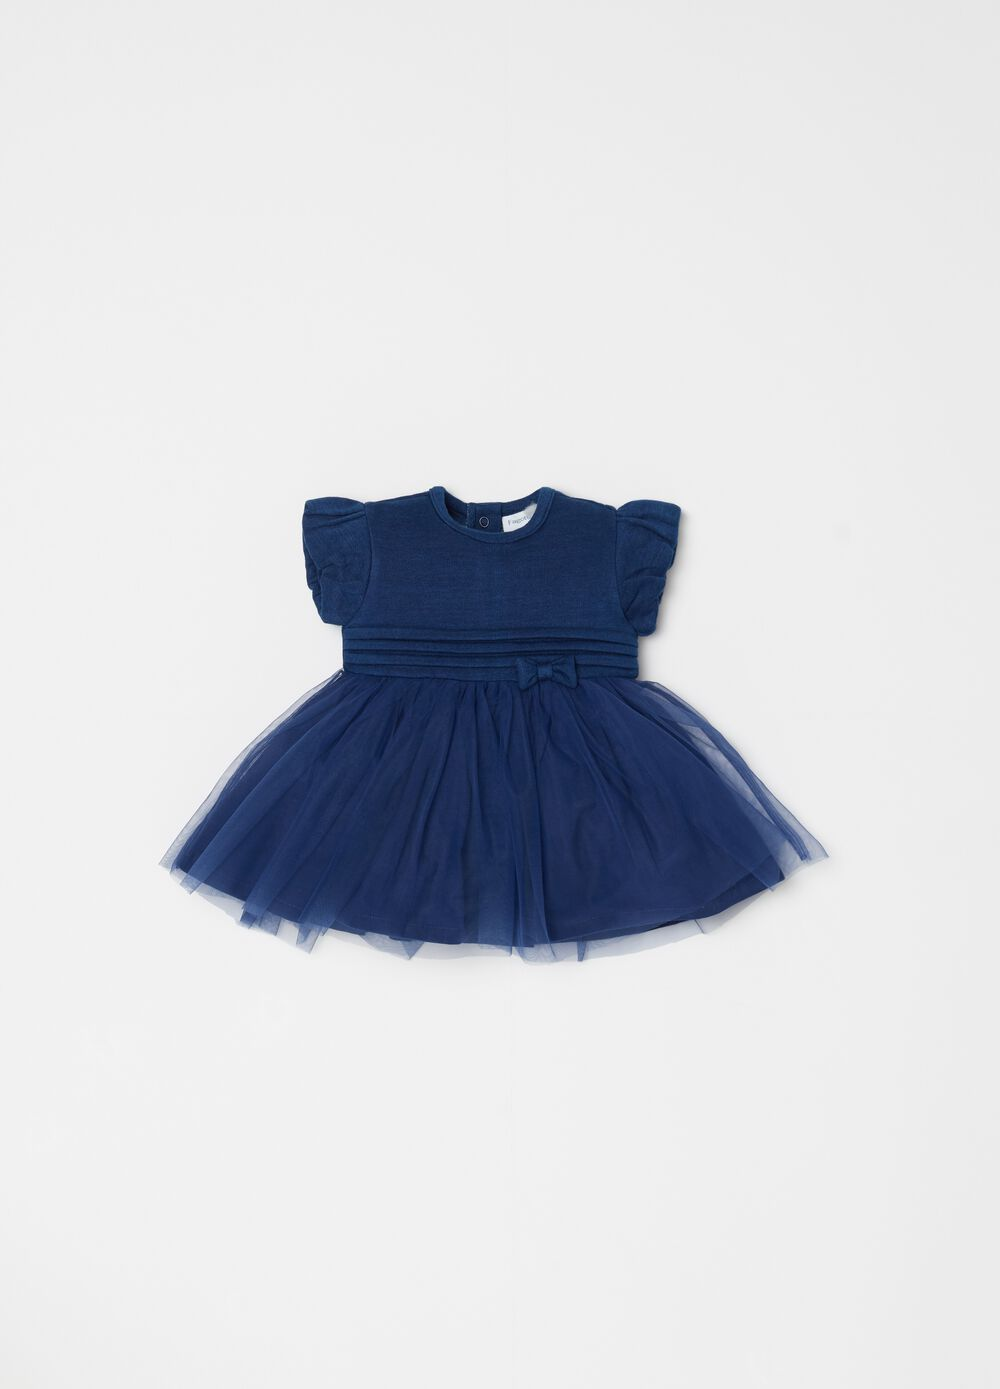 Tulle dress with full-circle skirt